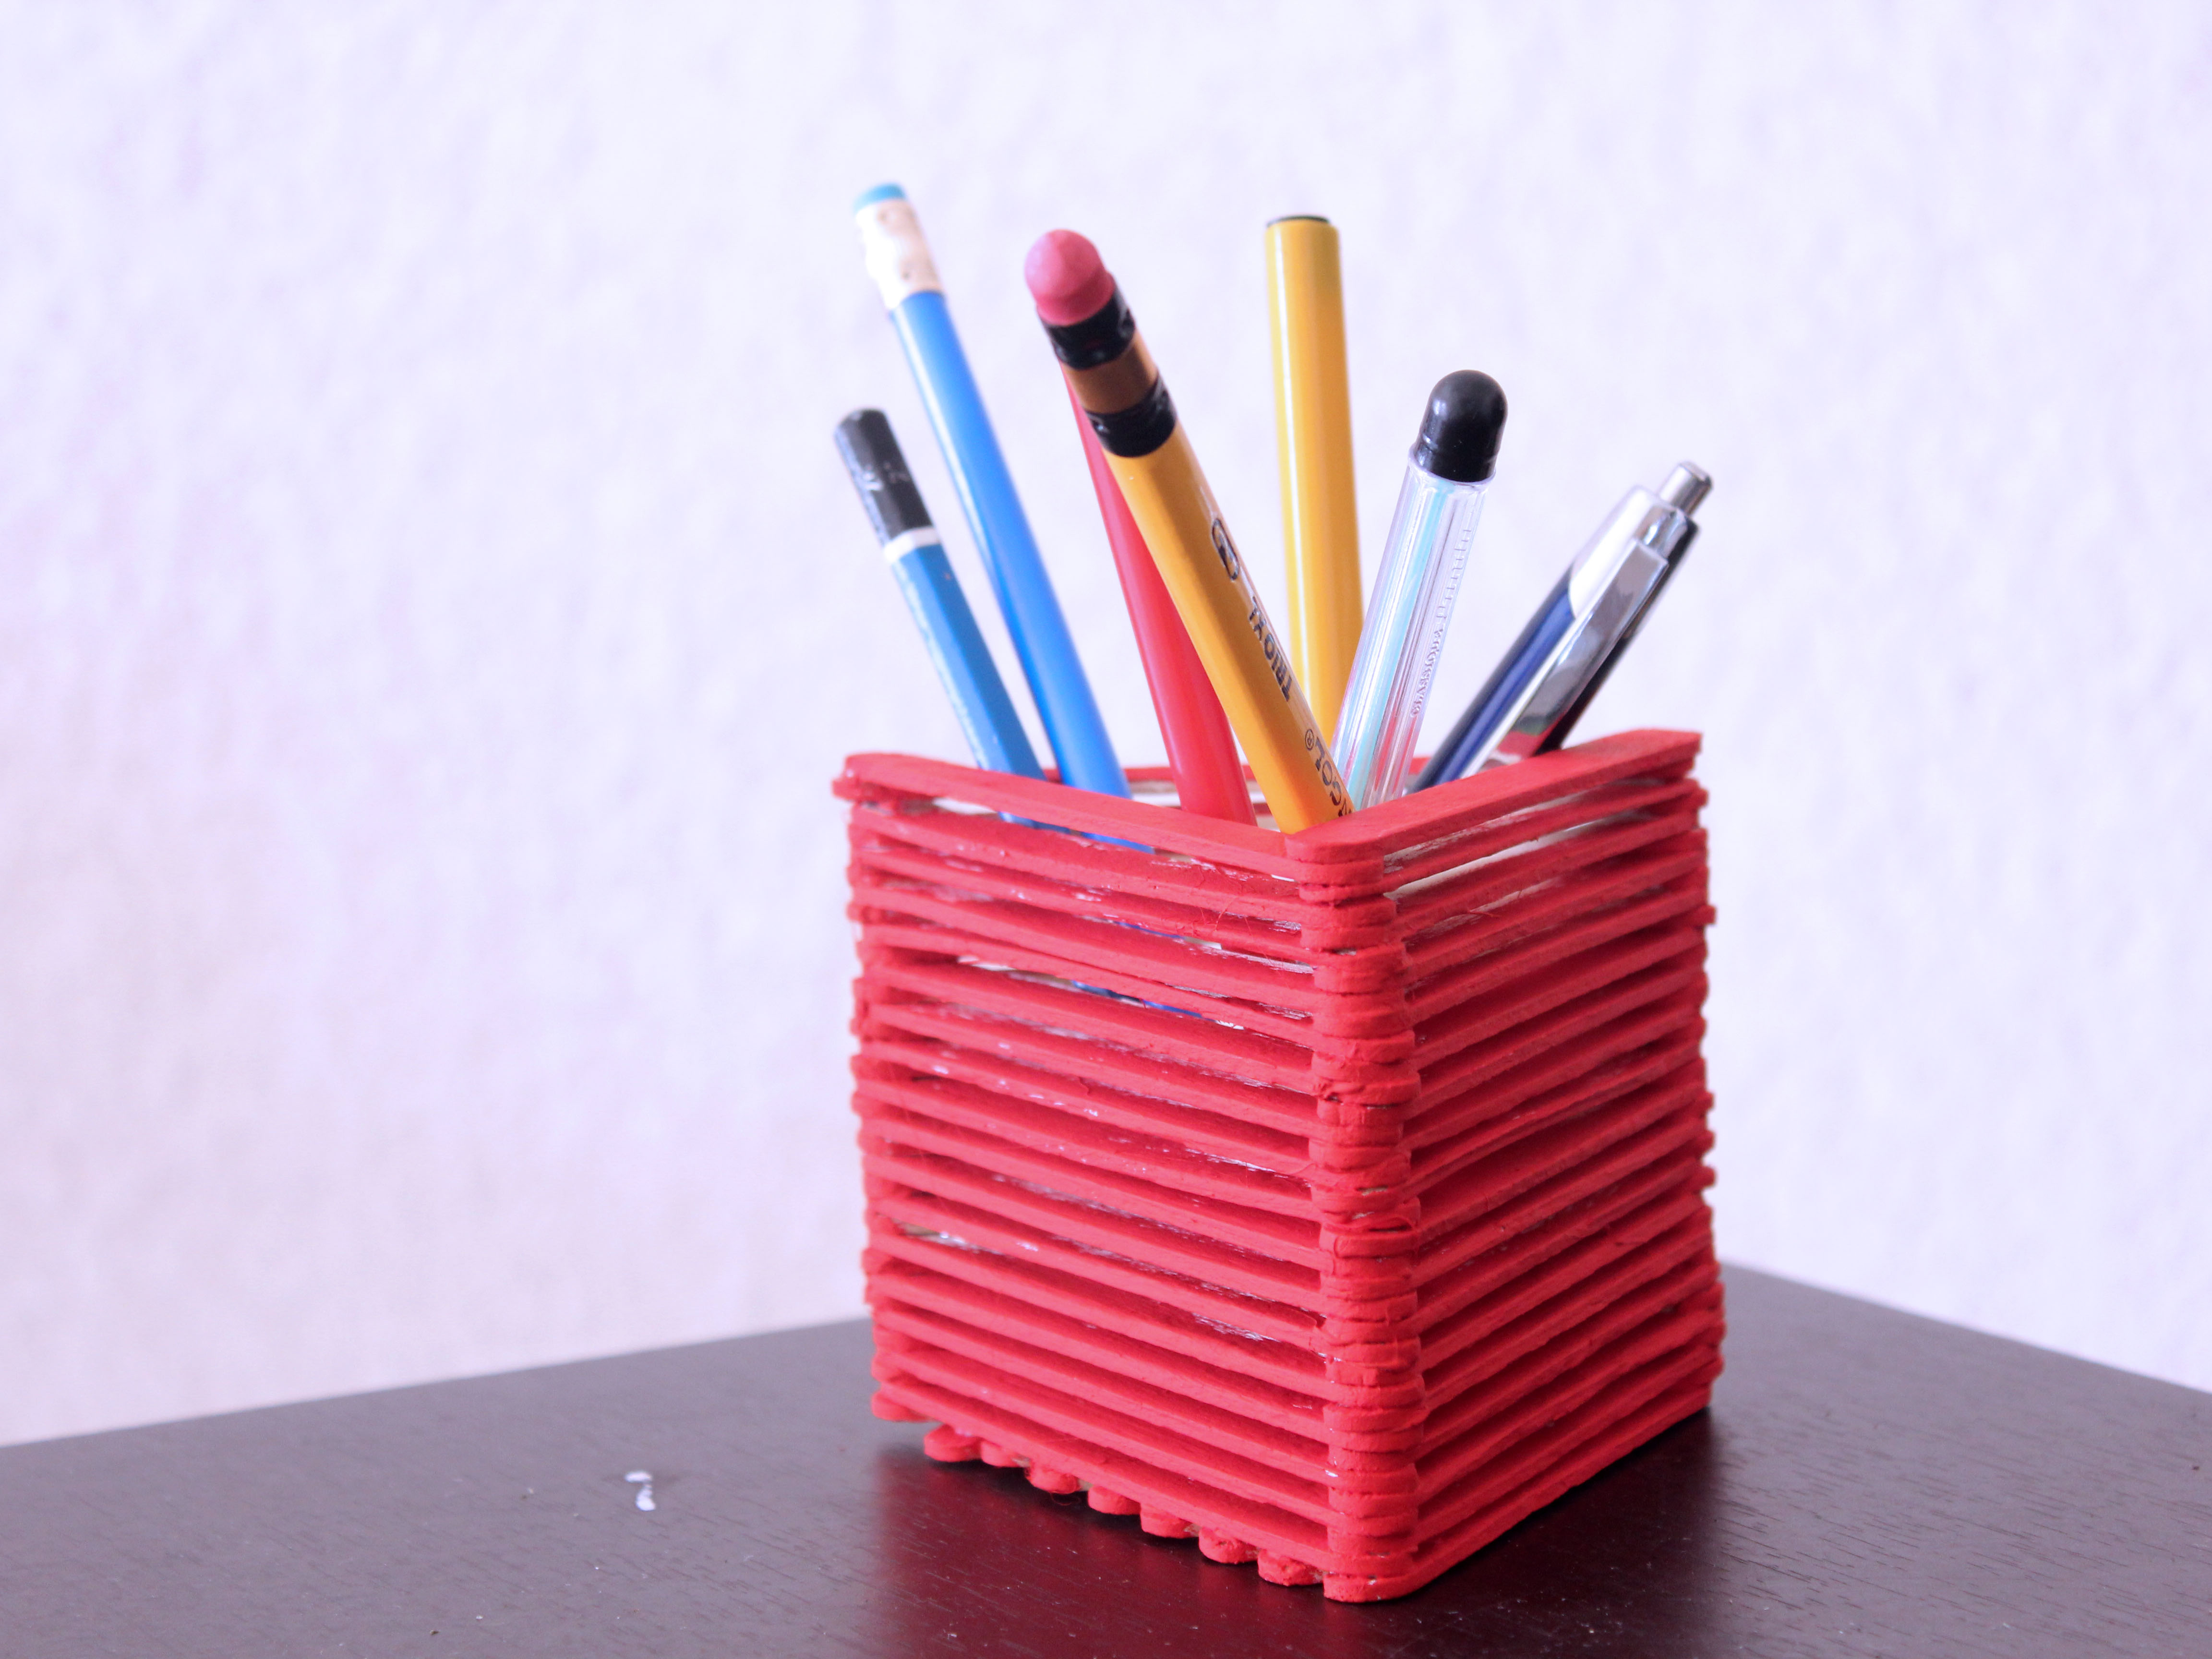 Homemade Pencil Holders How To Make A Pencil Holder With Popsicle Sticks With Pictures